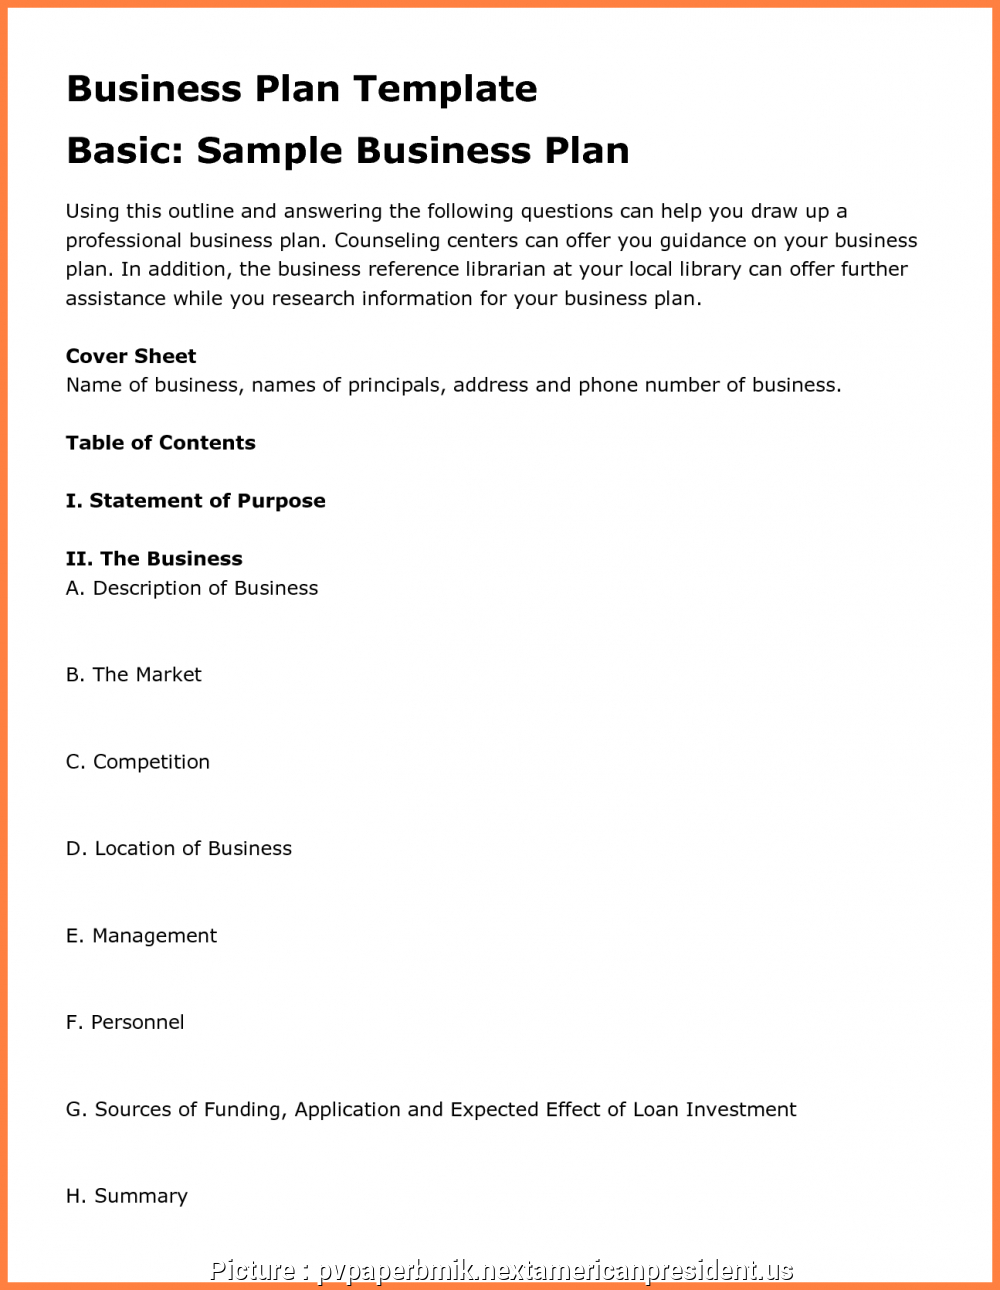 Bookstore Business Plan Sample Free Template In India Ppt Plans Ns Throughout Bookstore Business Plan Template